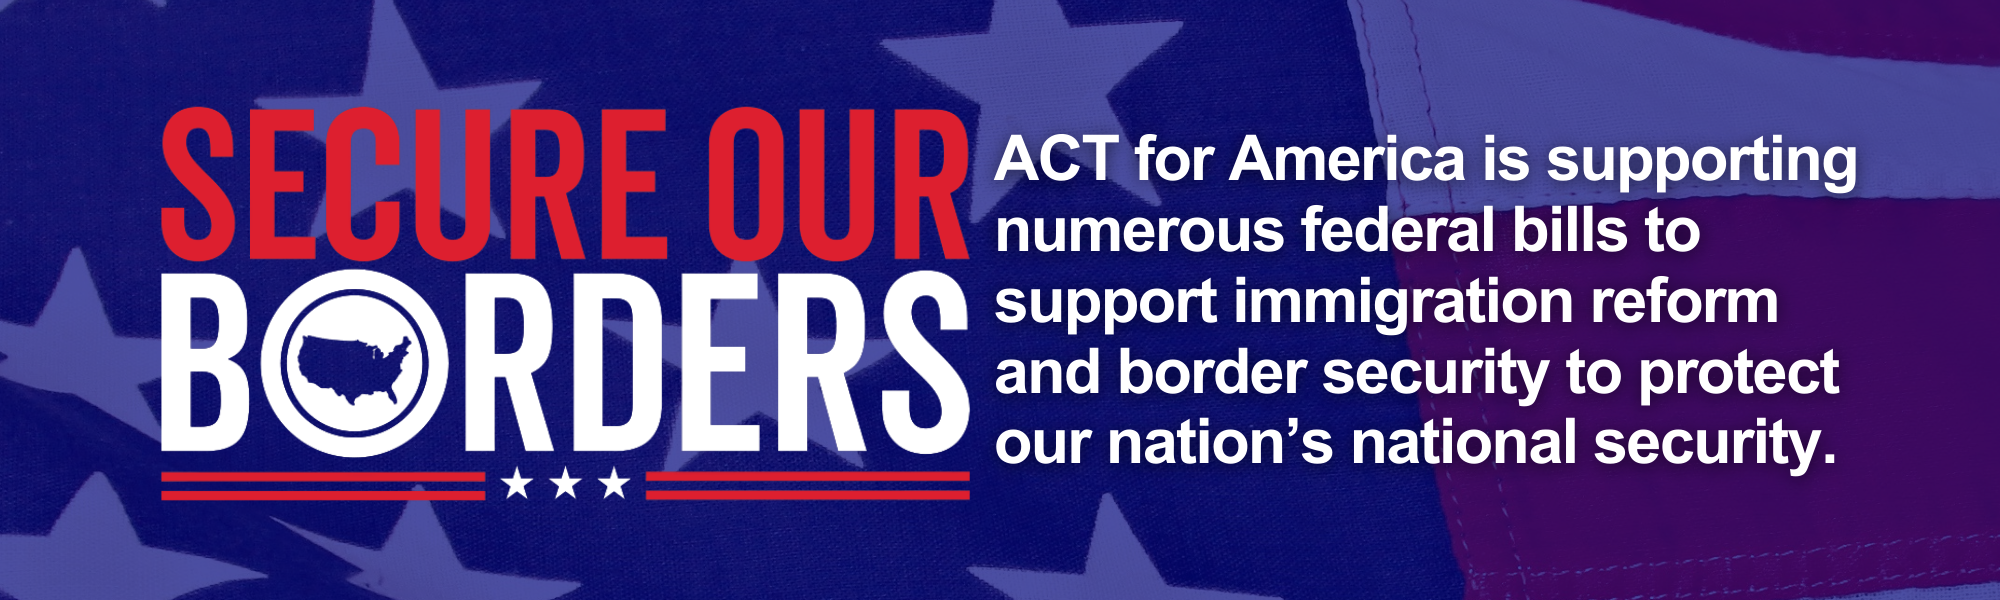 Secure Our Borders